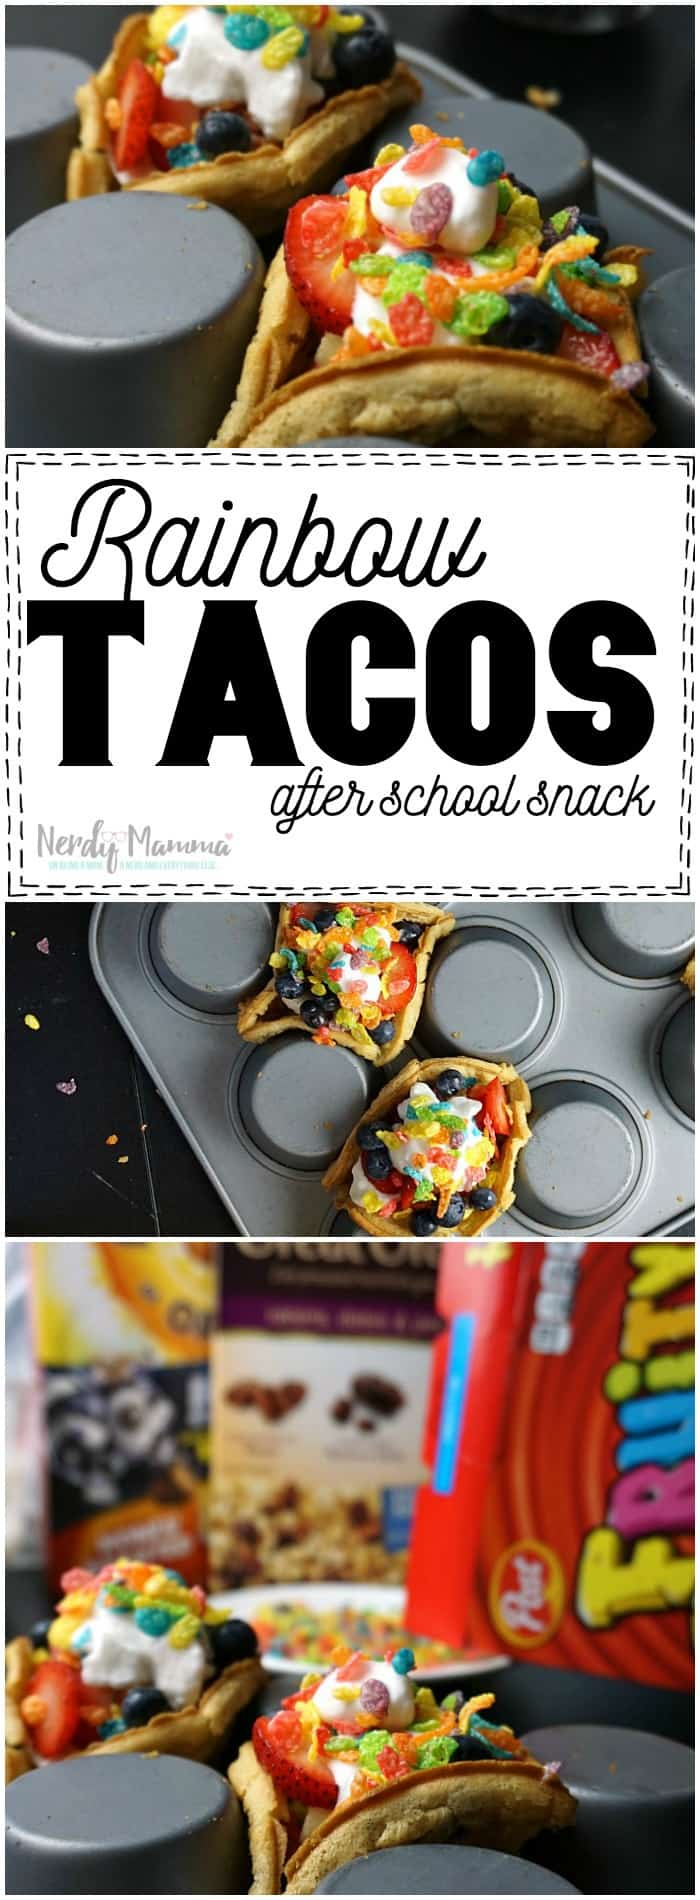 I love this easy after school snack recipe for Rainbow Tacos. My kids are going to LOVE them!